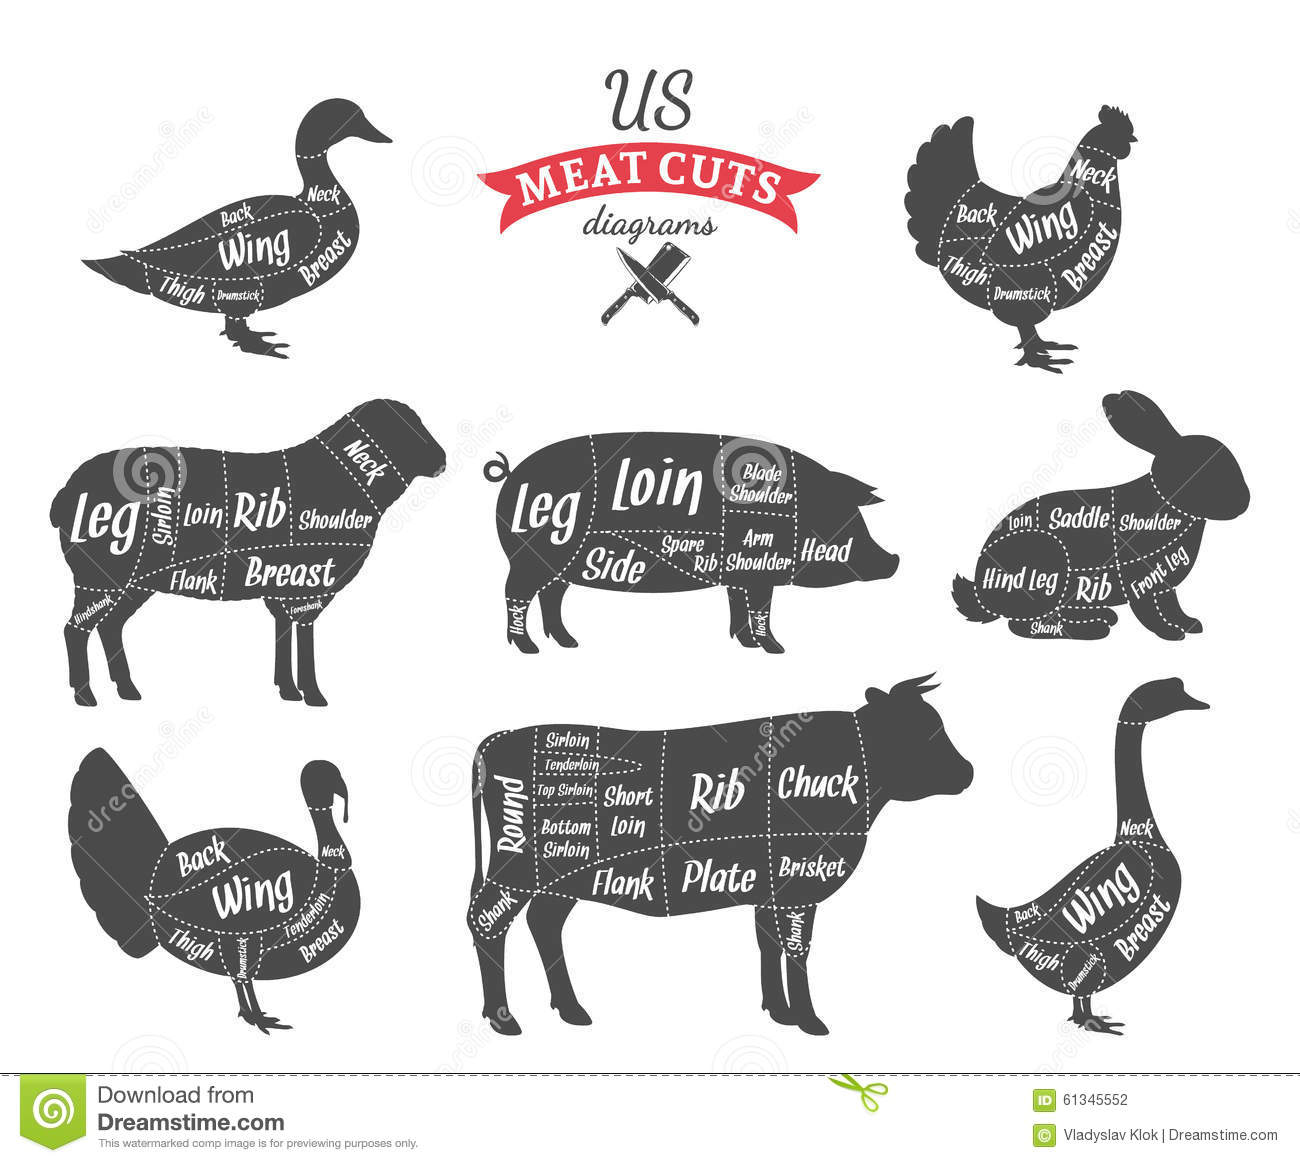 Stock Illustration American Us Meat Cuts Diagrams Beef Pork Lamb Rabbit Chicken Duck Goose Turkey Image61345552 on sheep meat chart